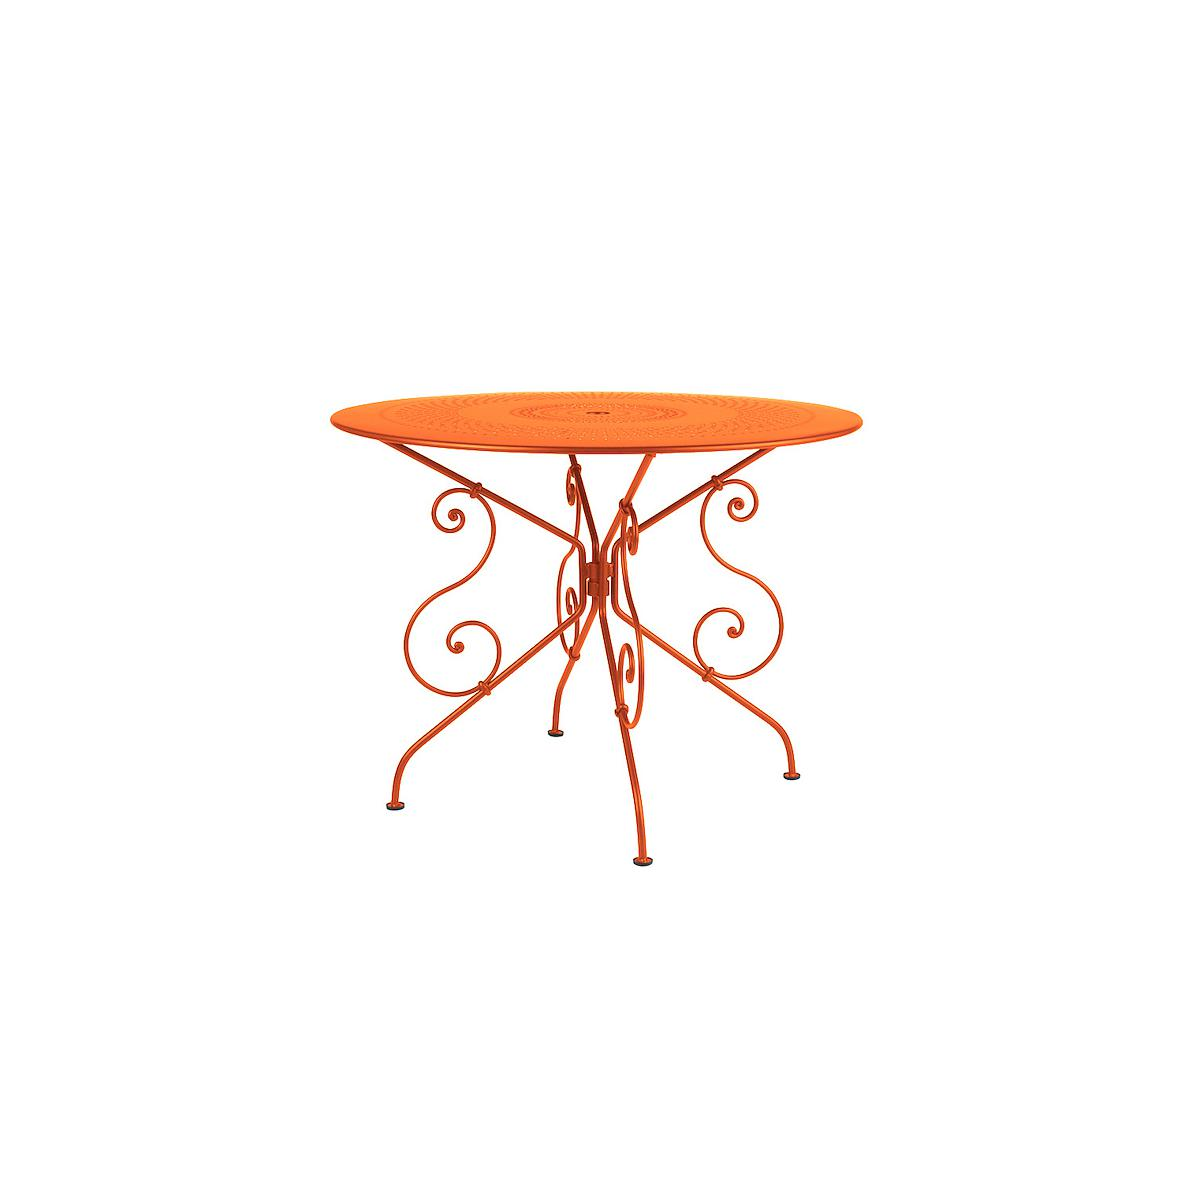 1900 by Fermob Table ronde 96 cm carotte